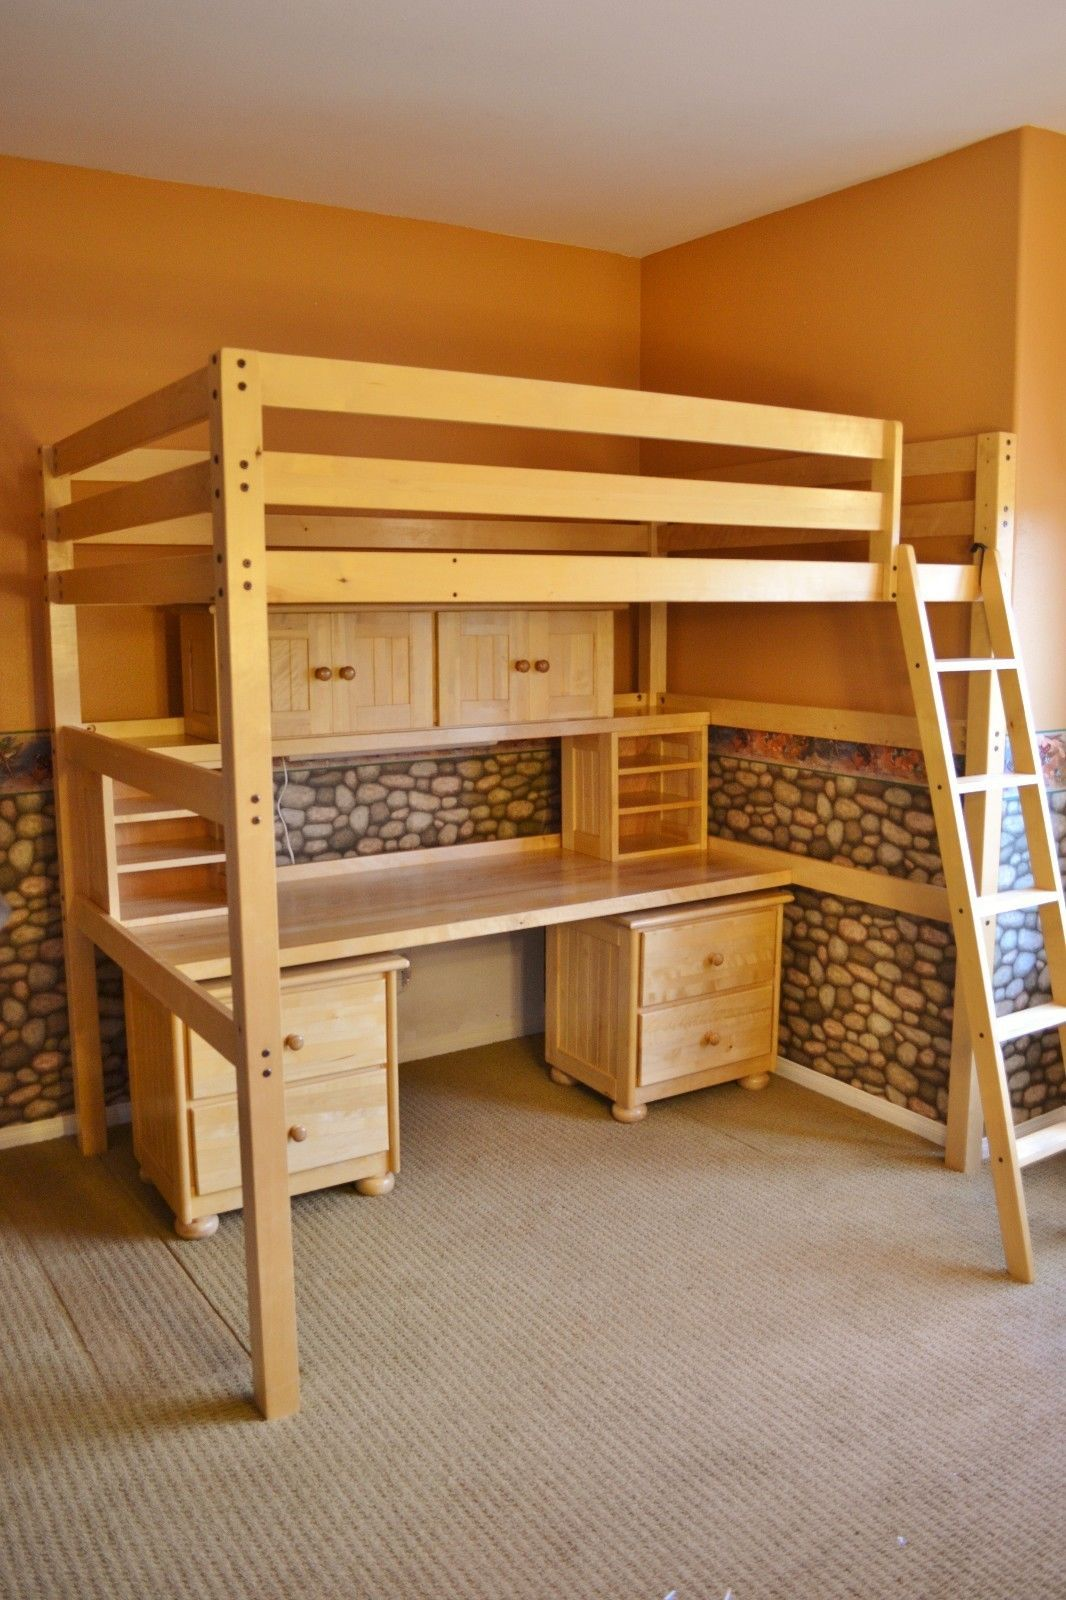 Best Children's Student Full Sized Loft Bed And Desk System 400 x 300